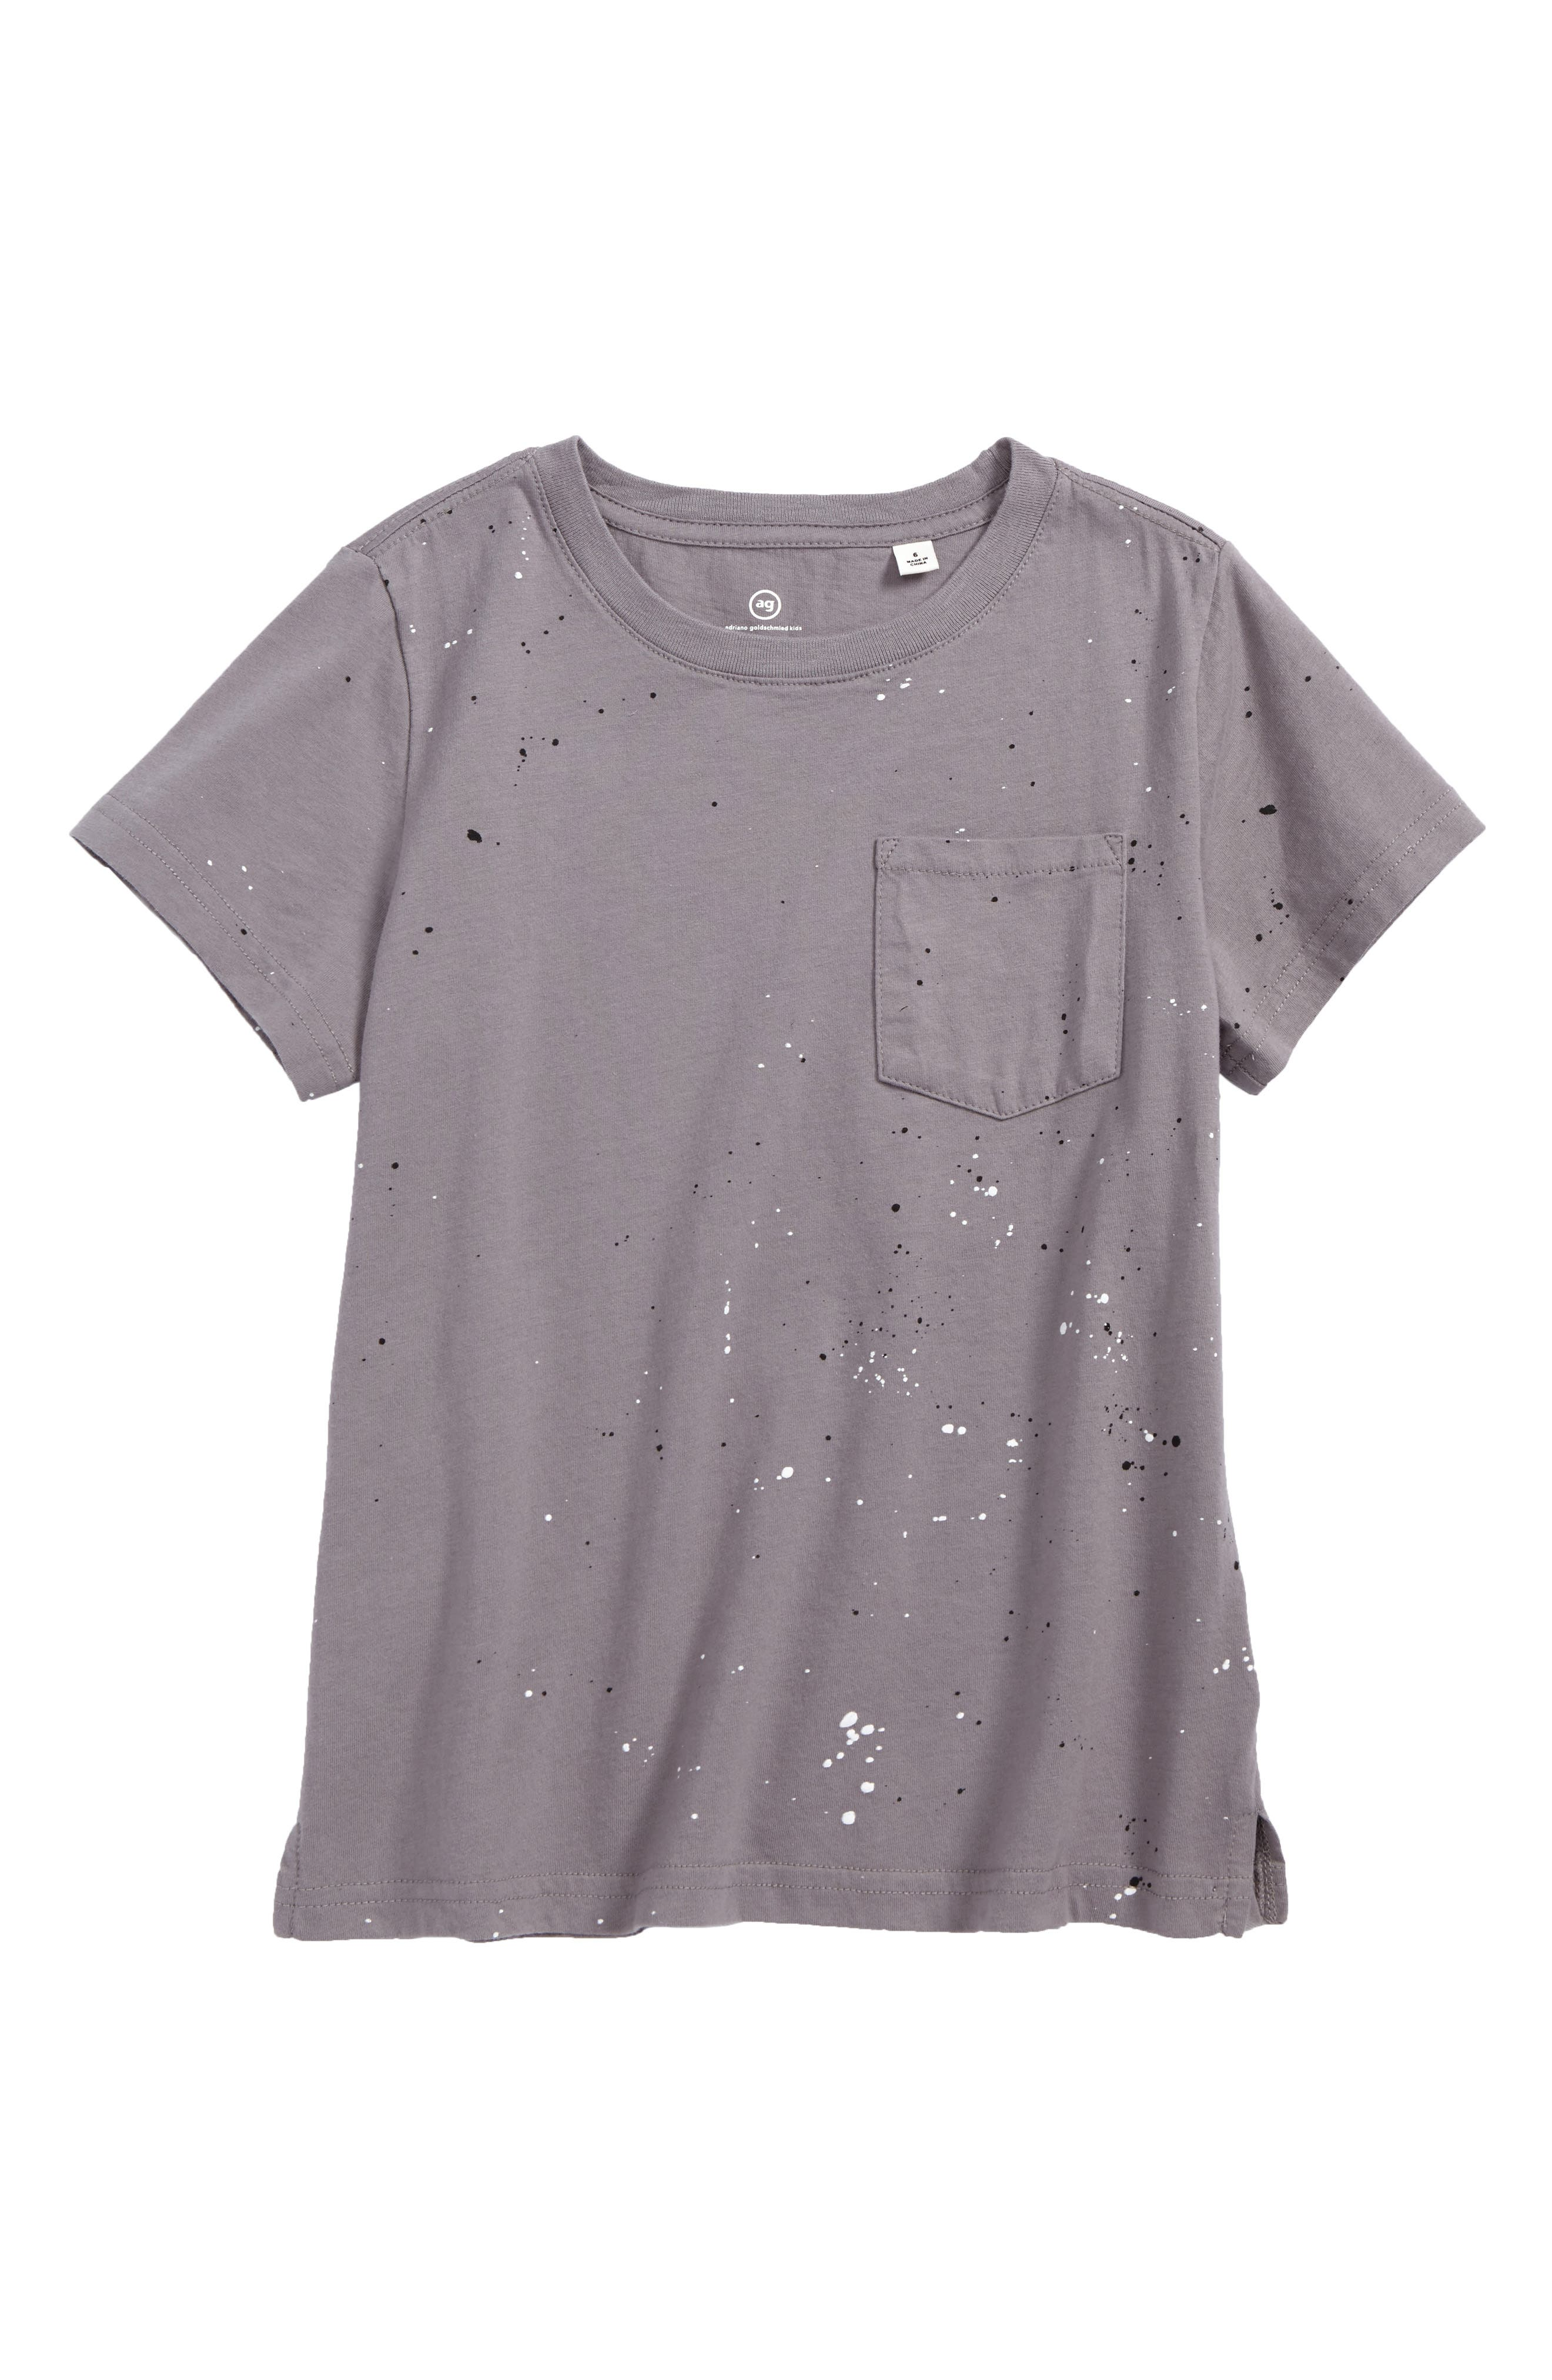 Alternate Image 1 Selected - ag adriano goldschmied kids Pigment Splatter T-Shirt (Toddler Boys & Little Boys)